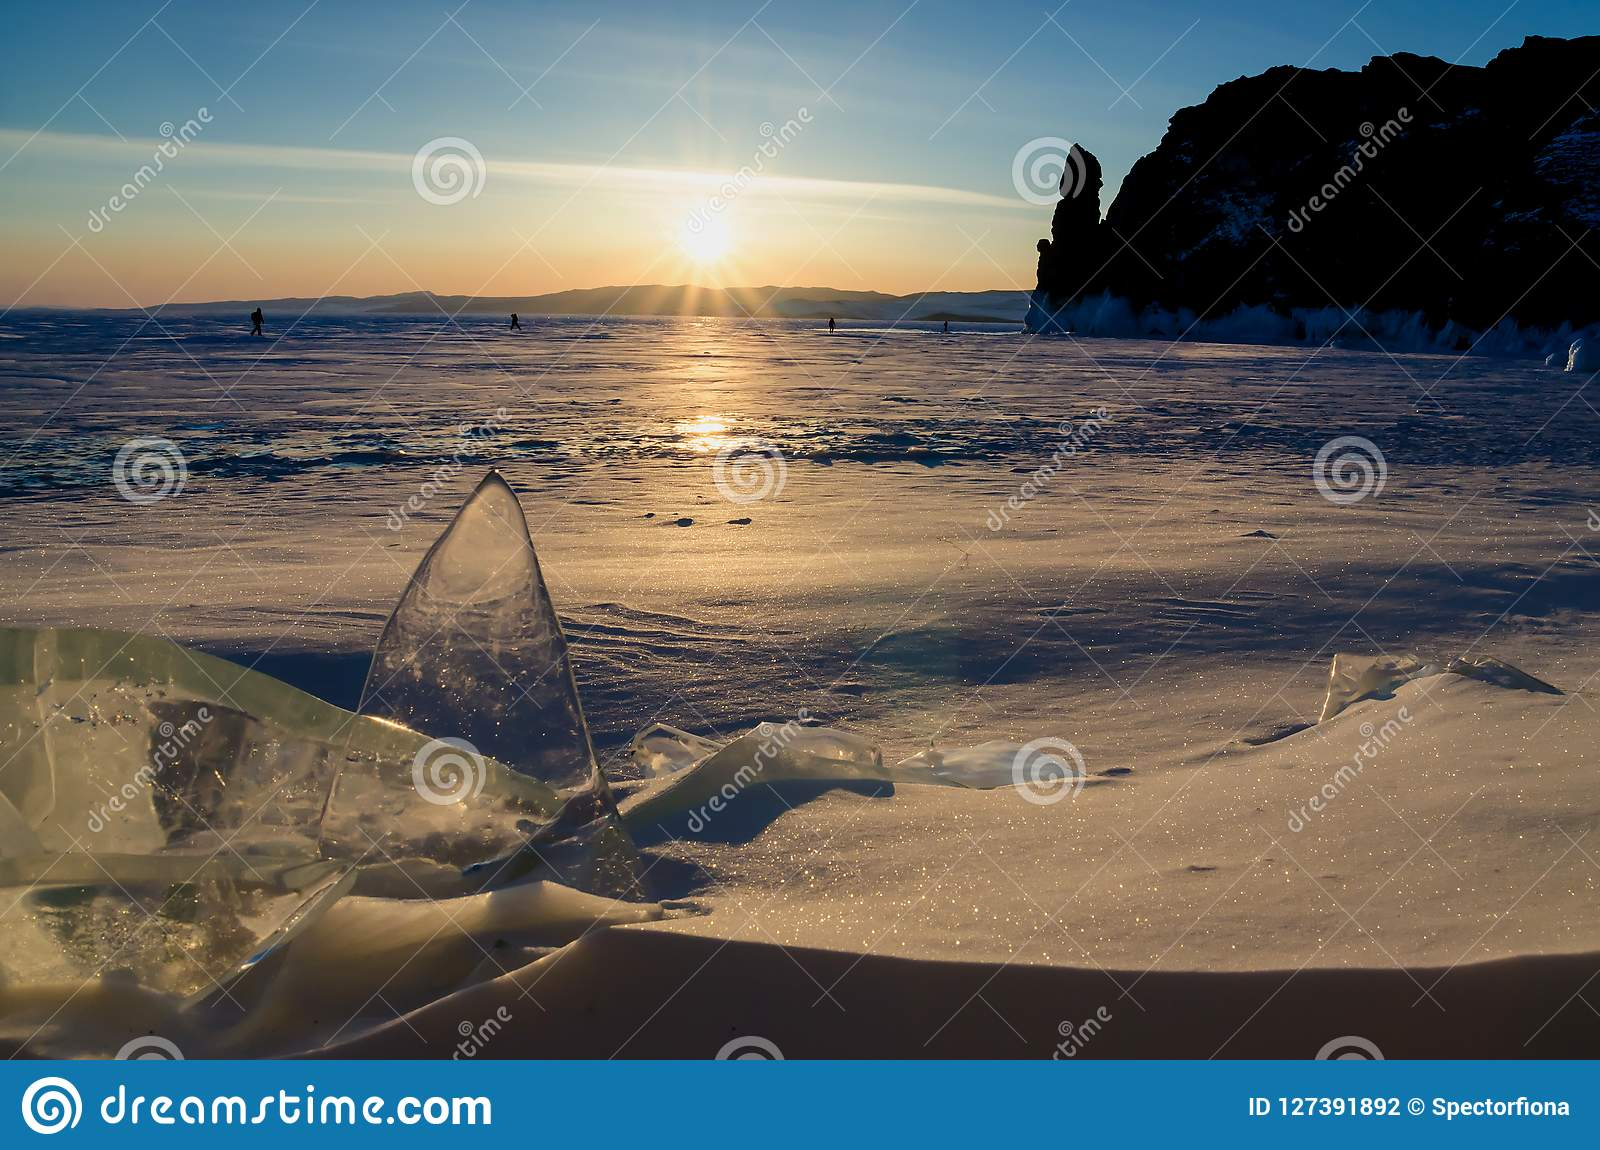 The Frozen Lake Baikal. Winter Landscape With Ice And Snow Near The Rocks Of Olkhon Island In